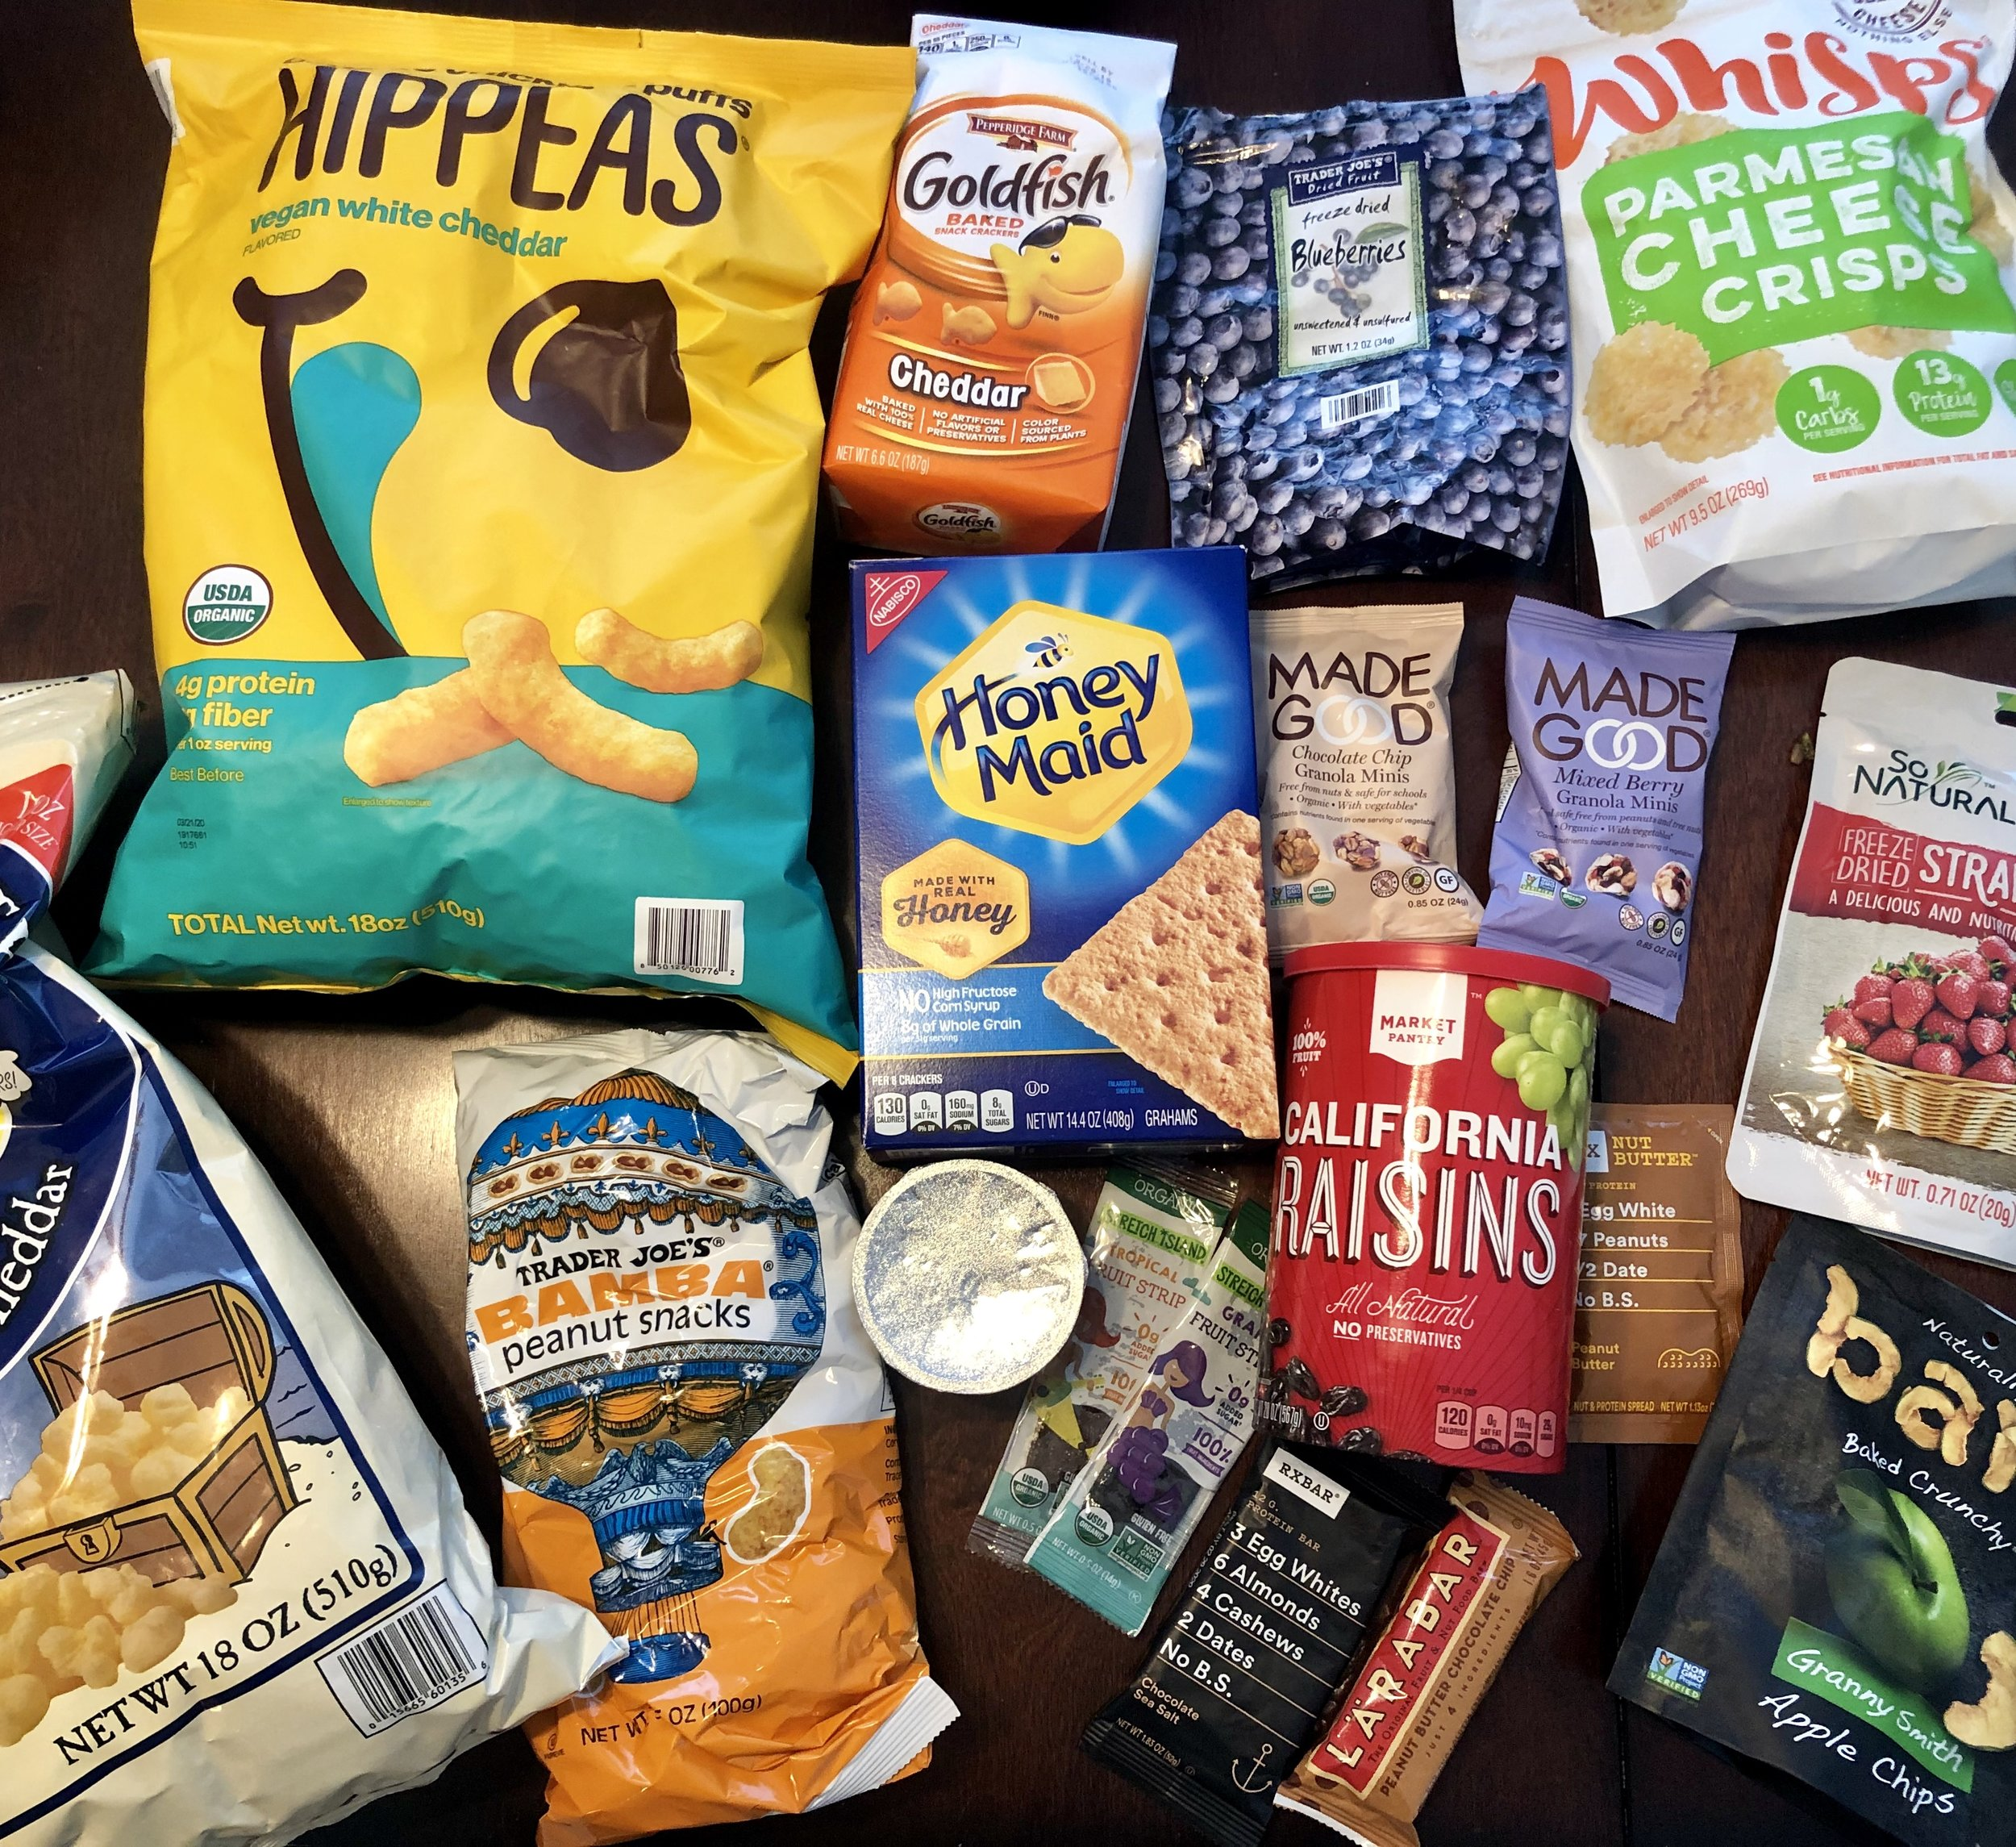 A peak into my current prepared food snack cabinet: I try to incorporate multiple food groups and not just carbohydrates.